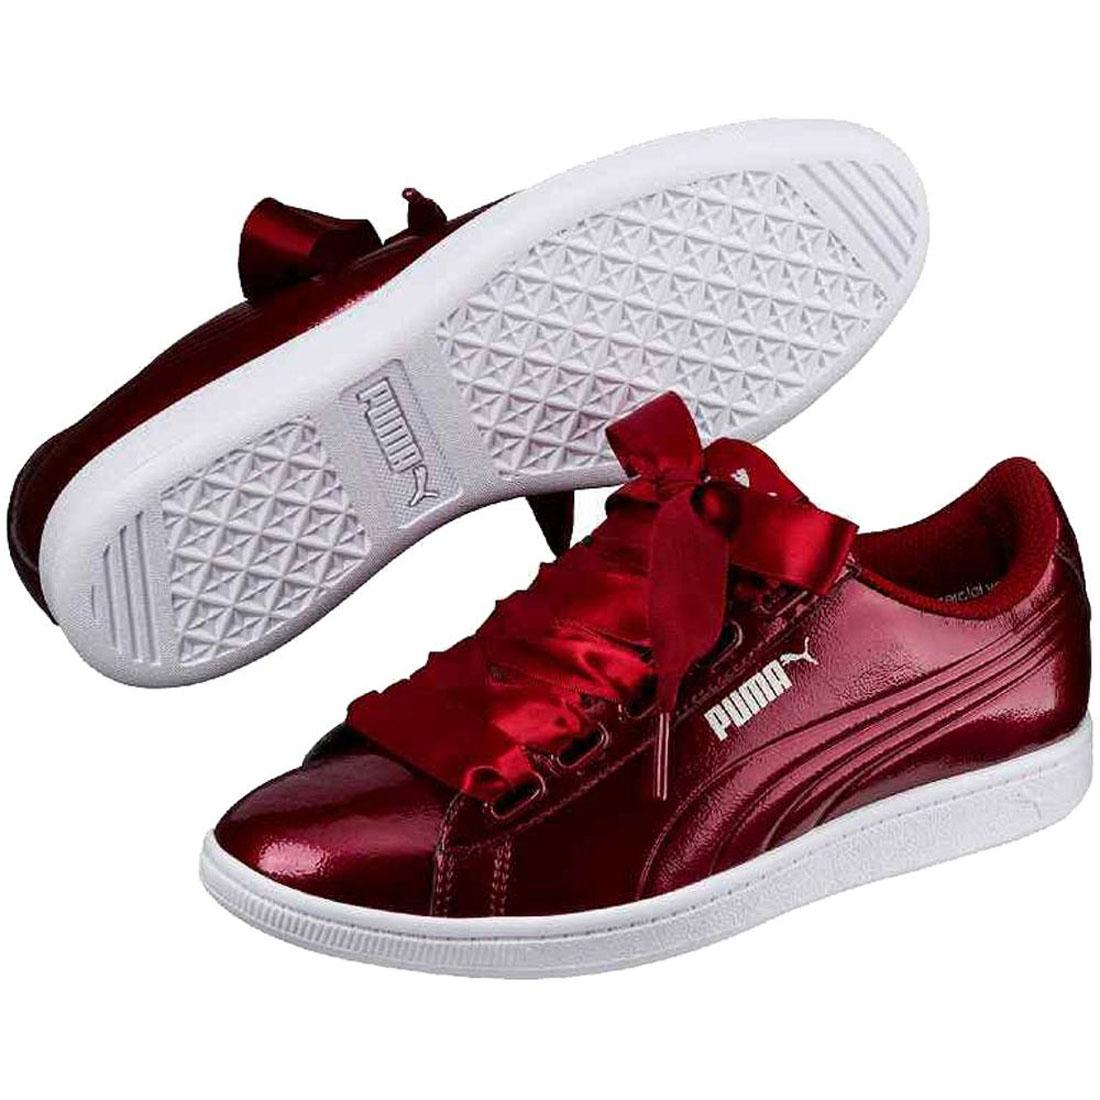 Show Women Vikky Original Ribbon Bordeaux Puma Title Sneakers Basket Shoes About P Red Details EYD2W9IH